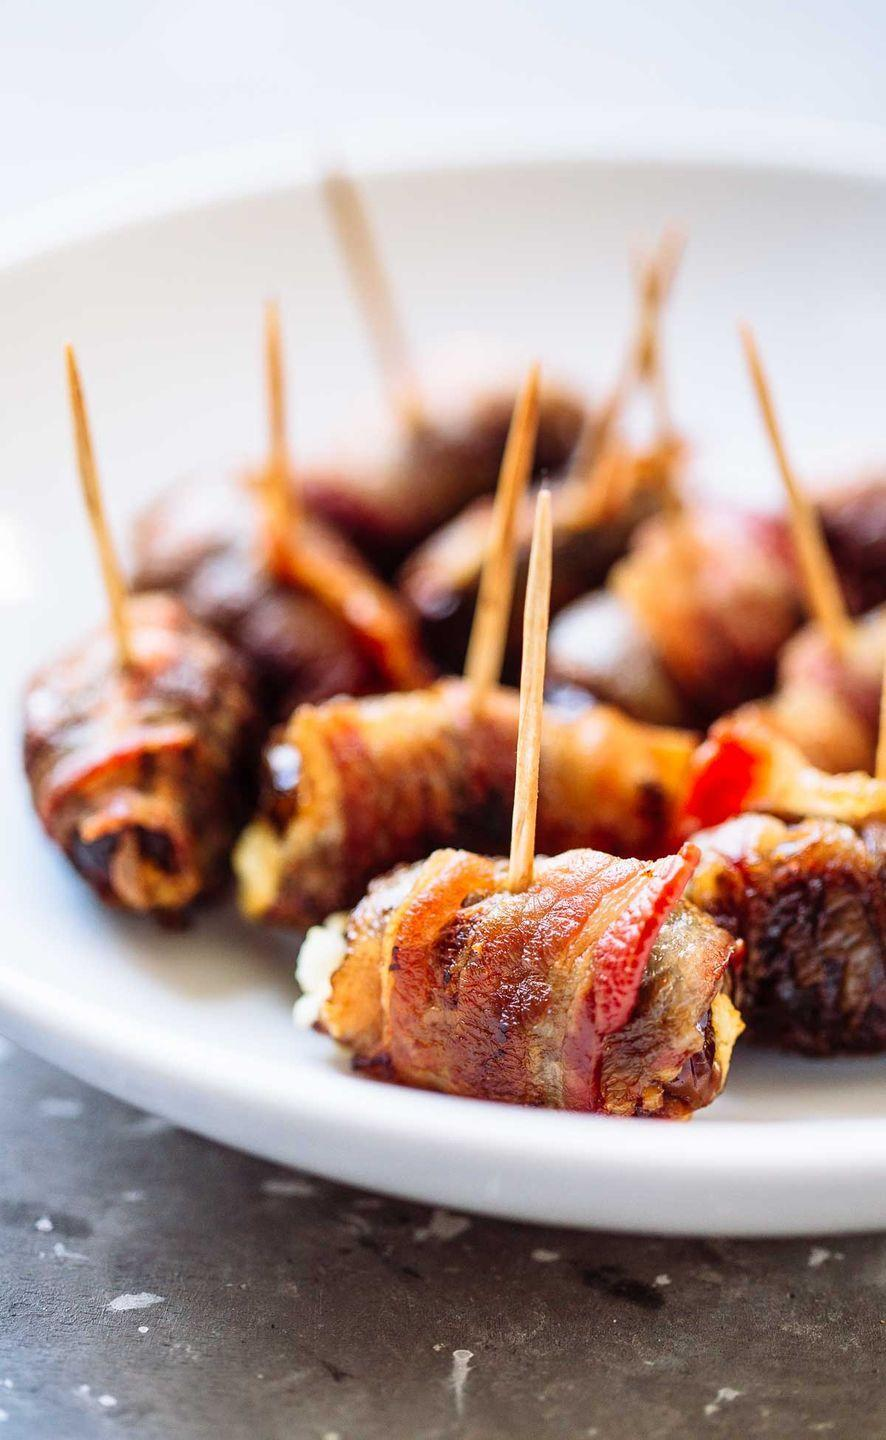 "<p>Want to take something from dull to AMAZE? Wrap it in bacon.</p><p>Get the recipe from <a href=""http://pinchofyum.com/bacon-wrapped-dates-with-goat-cheese"" rel=""nofollow noopener"" target=""_blank"" data-ylk=""slk:Pinch of Yum"" class=""link rapid-noclick-resp"">Pinch of Yum</a>.</p>"